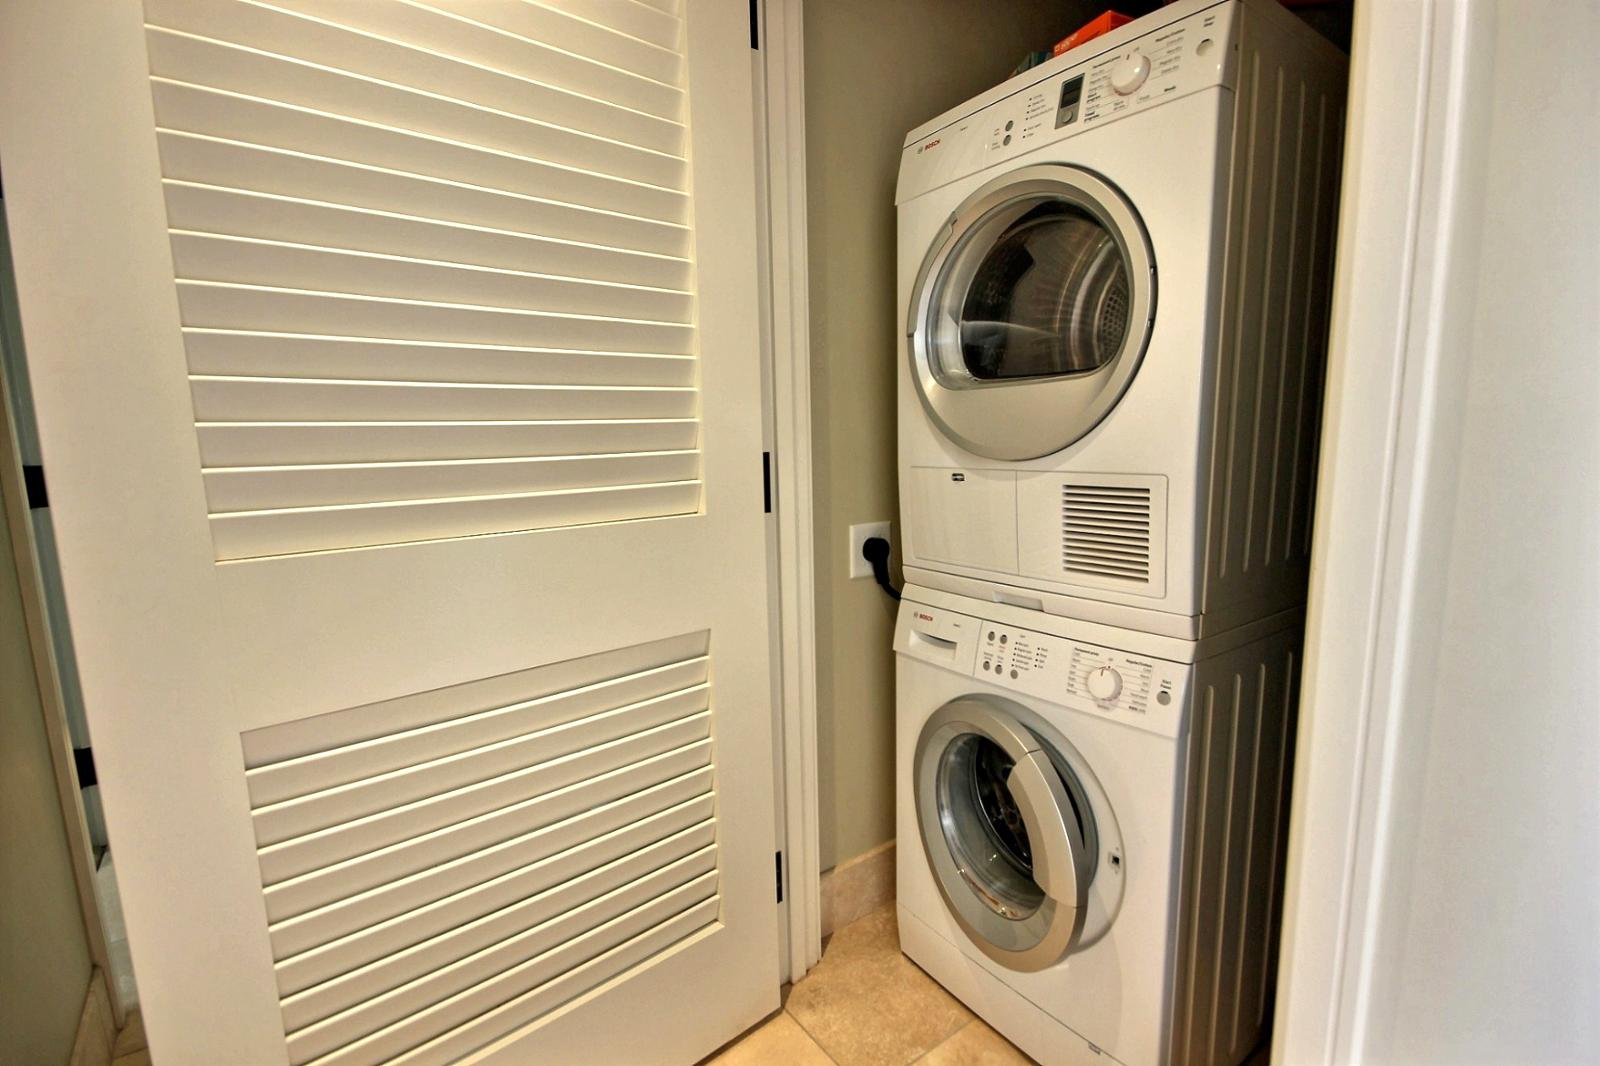 Bosch Washer & Dryer to keep those bathing suits fresh each day